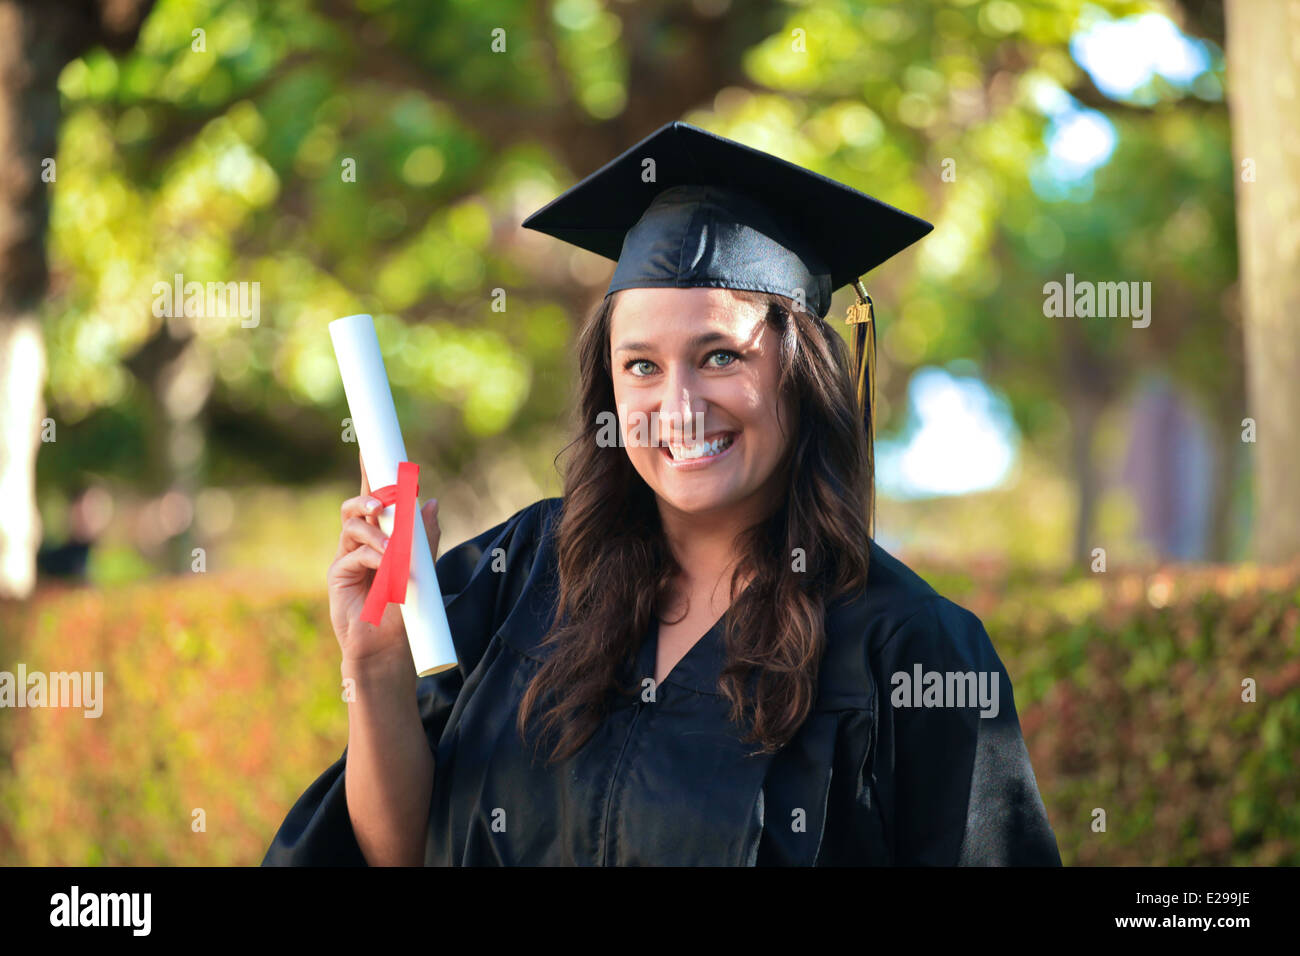 A beautiful girl with brown hair and blue eyes wearing a college graduation cap and gown smiles and holds her diploma - Stock Image